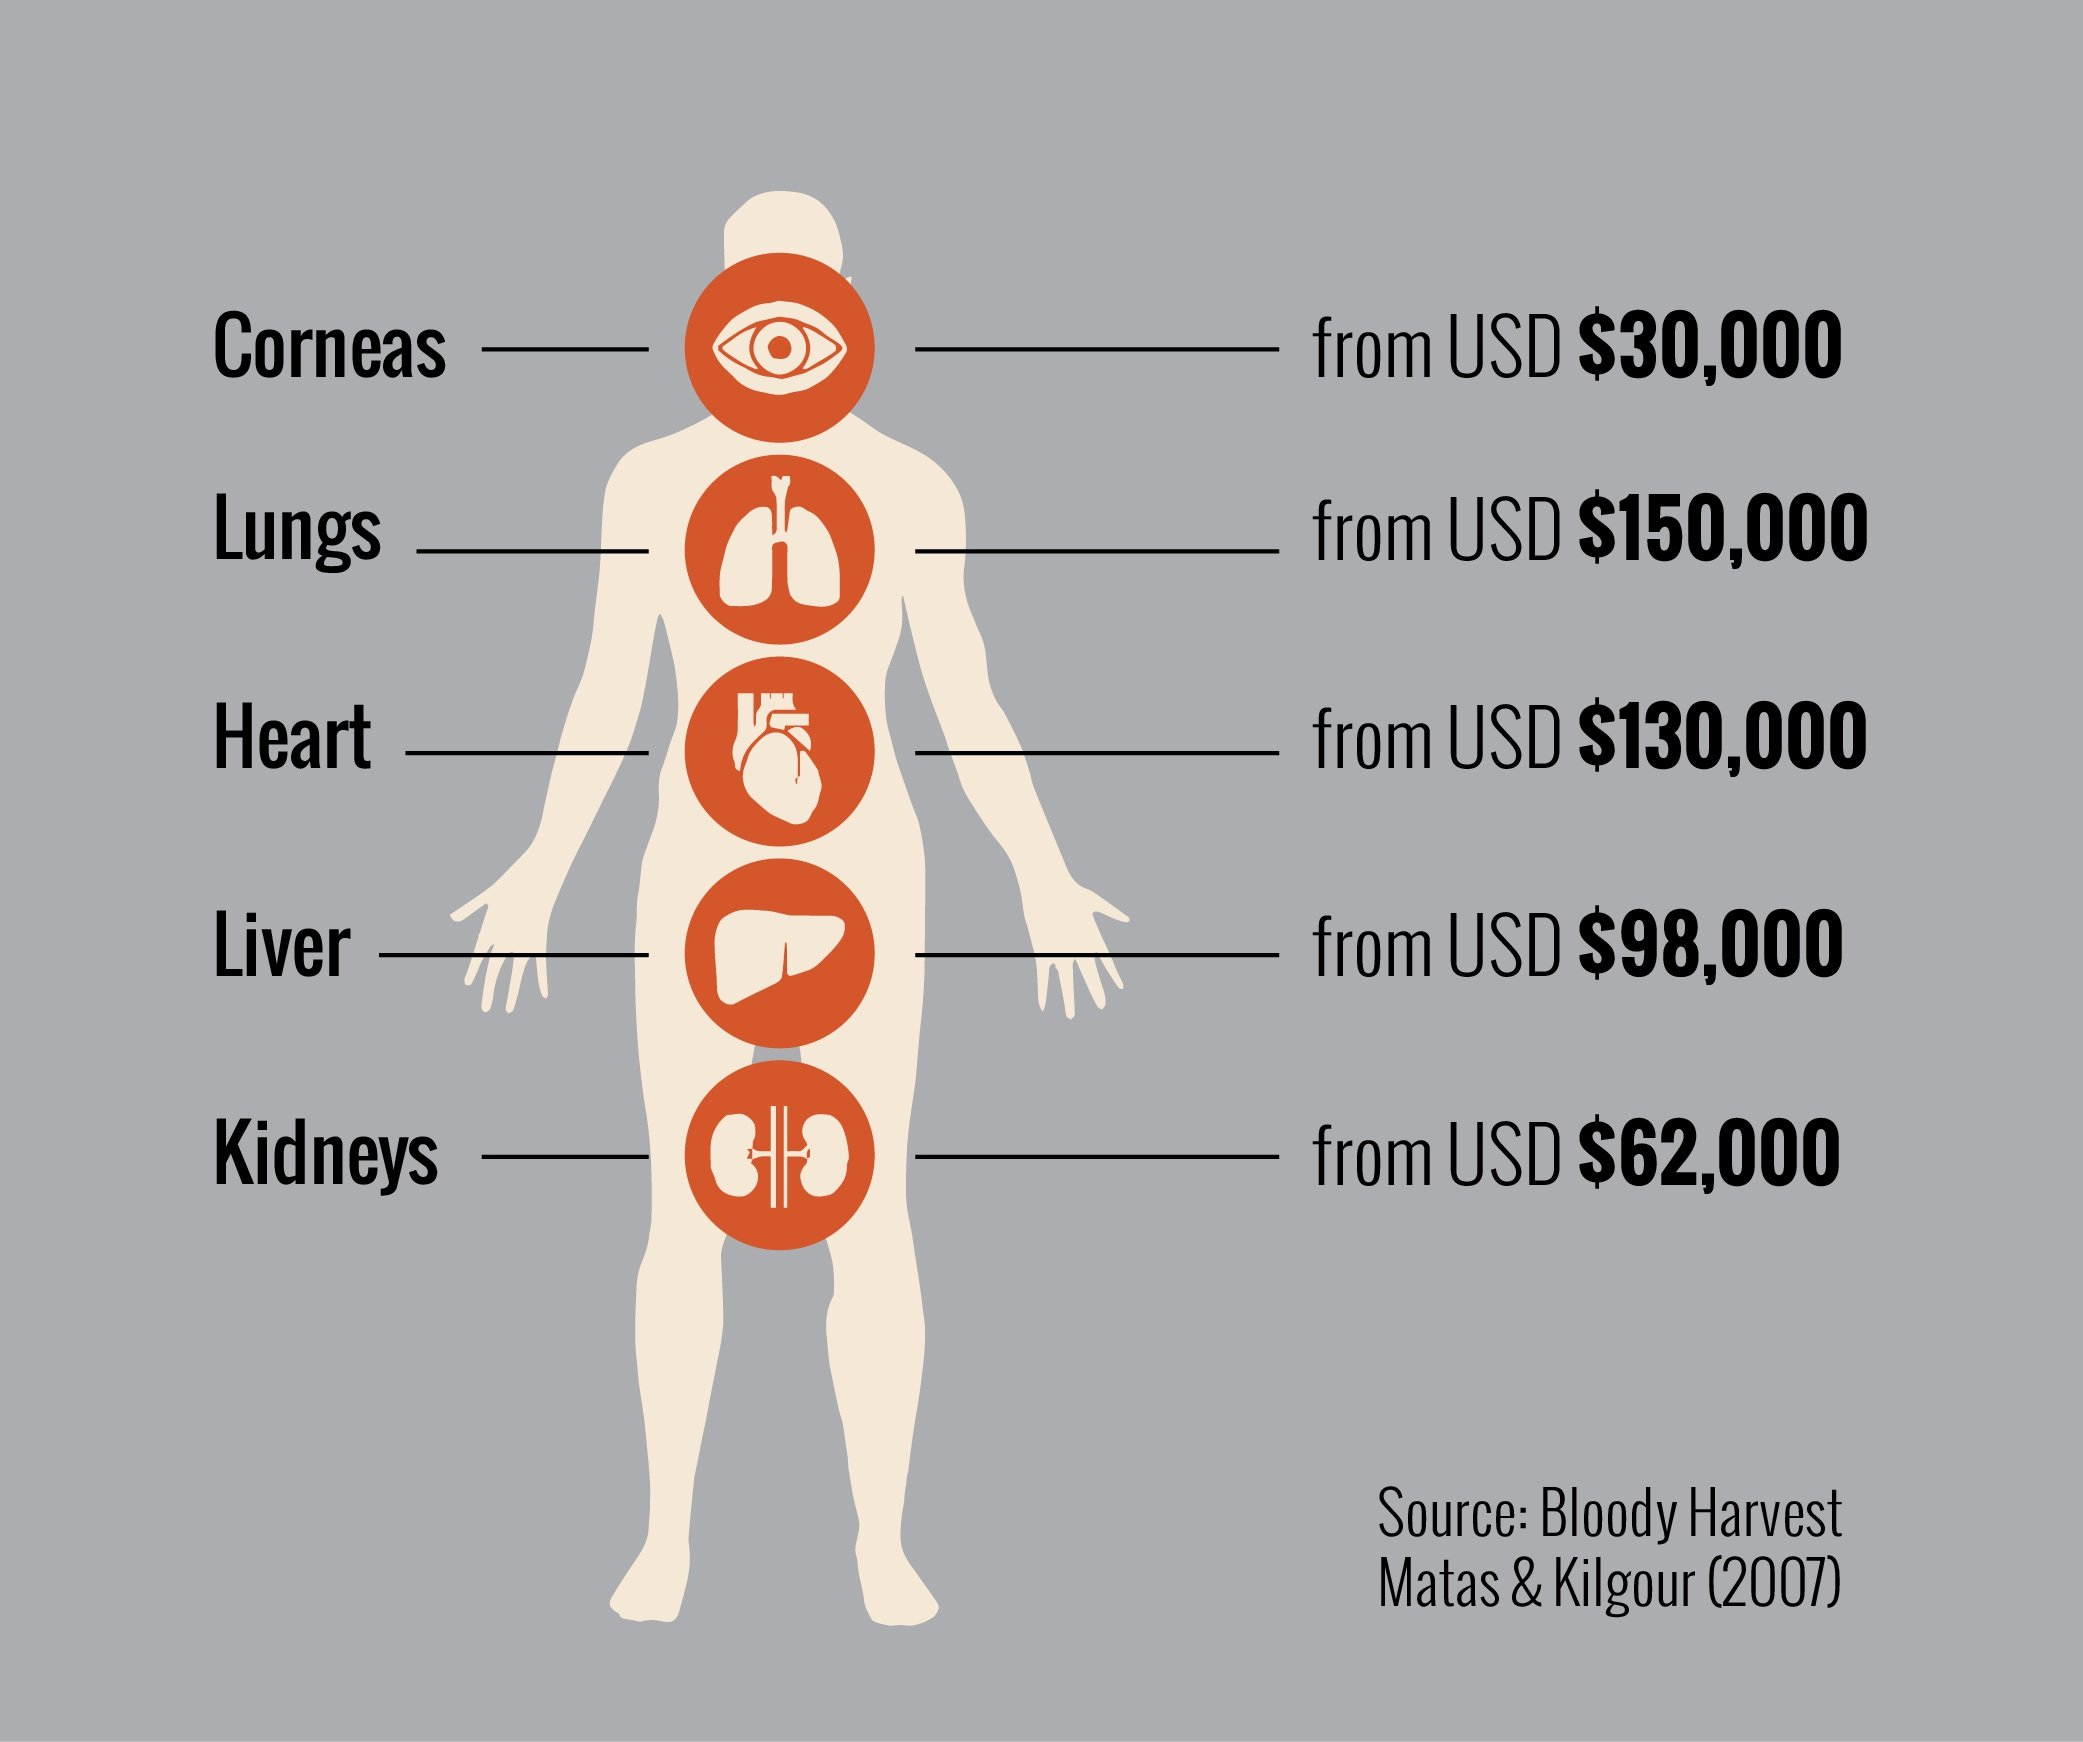 How harsh economic conditions might be leading nigerian for Can you donate organs if you have a tattoo